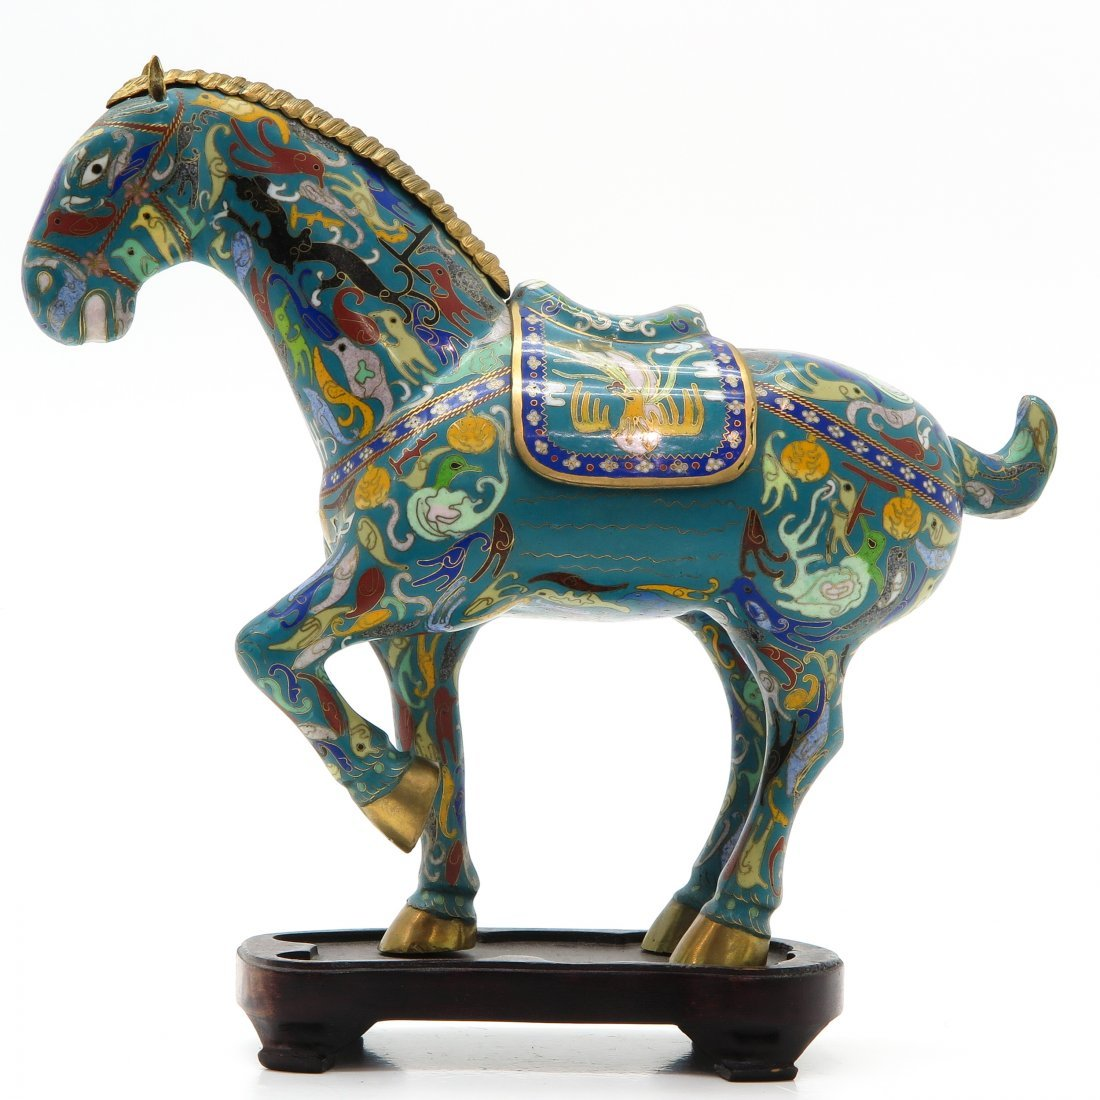 Chinese Cloisonné Sculpture of Horse